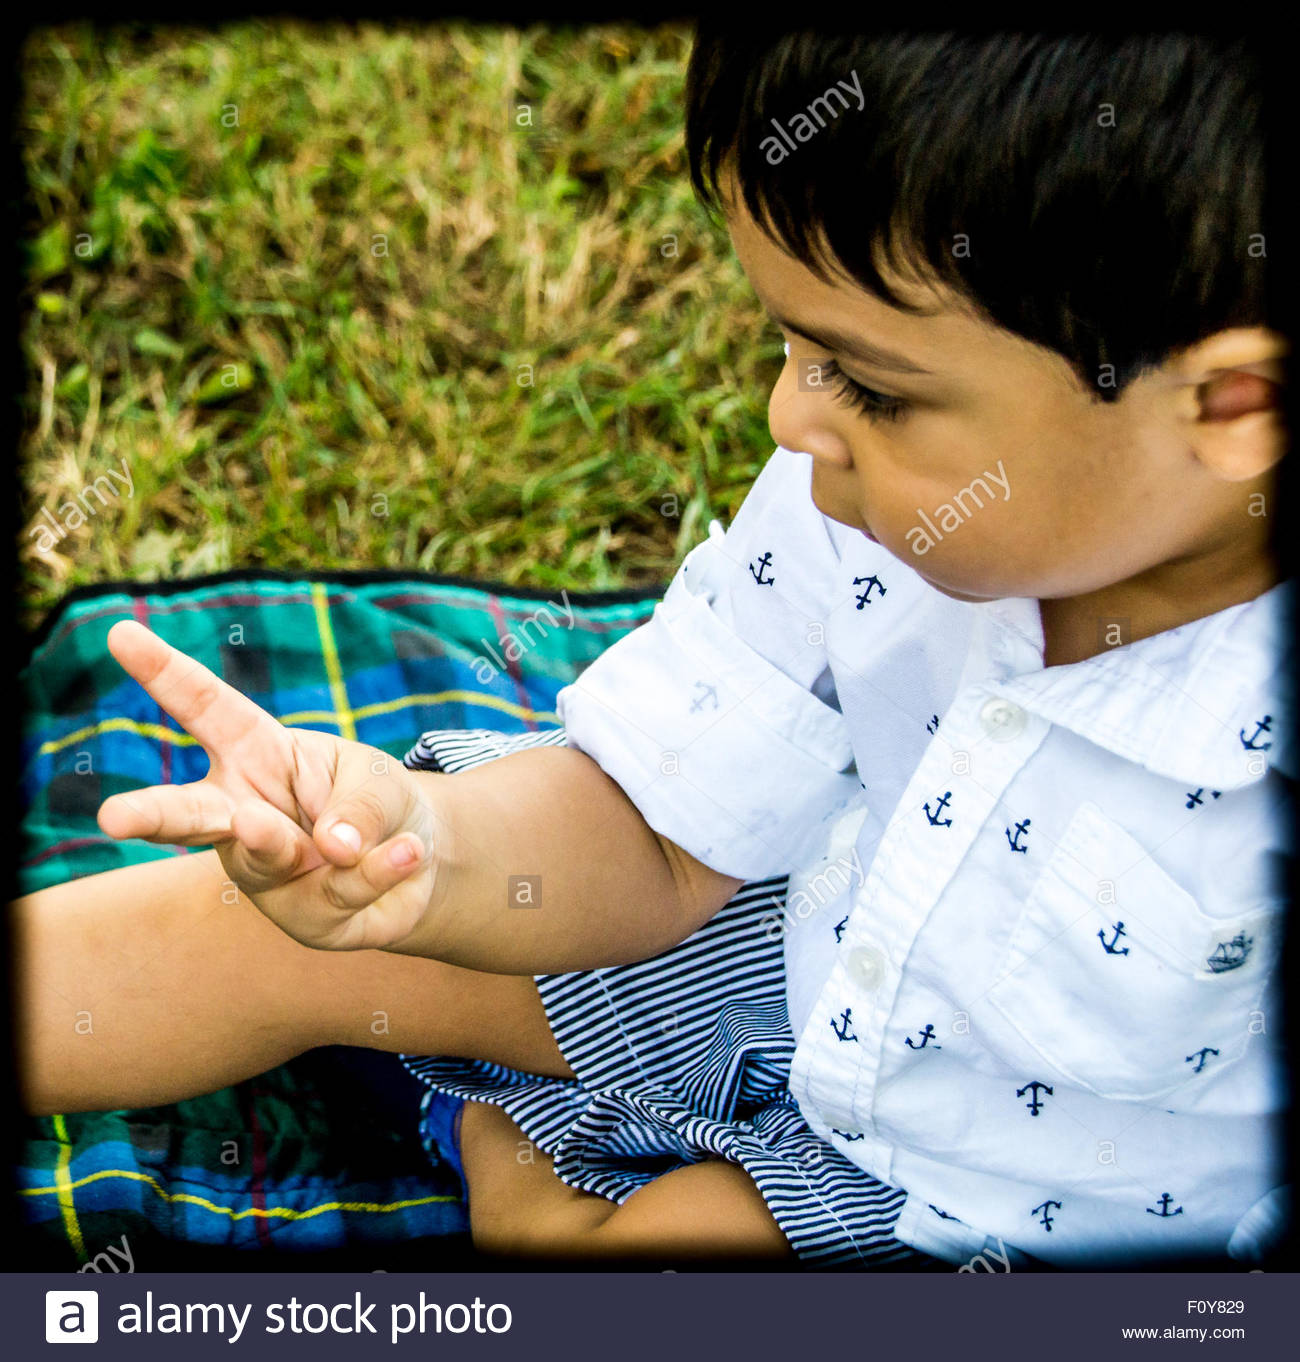 Latino child sitting outside and counting on his fingers - Stock Image